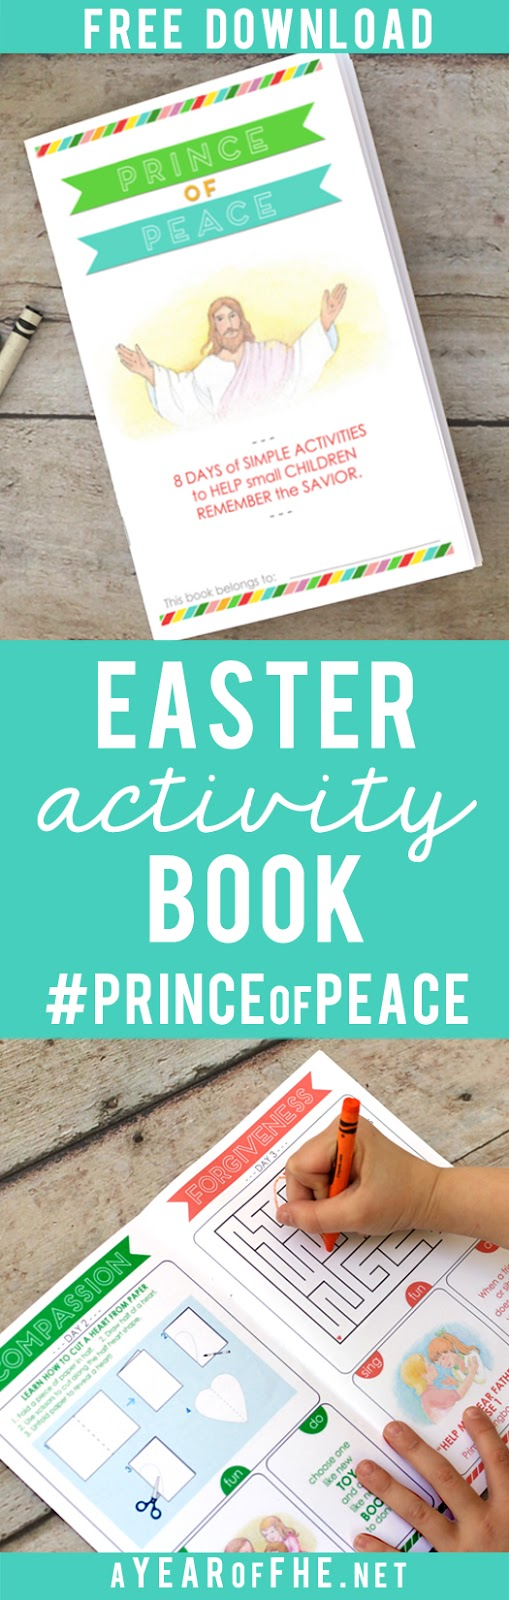 a year of fhe free lds download prince of peace easter